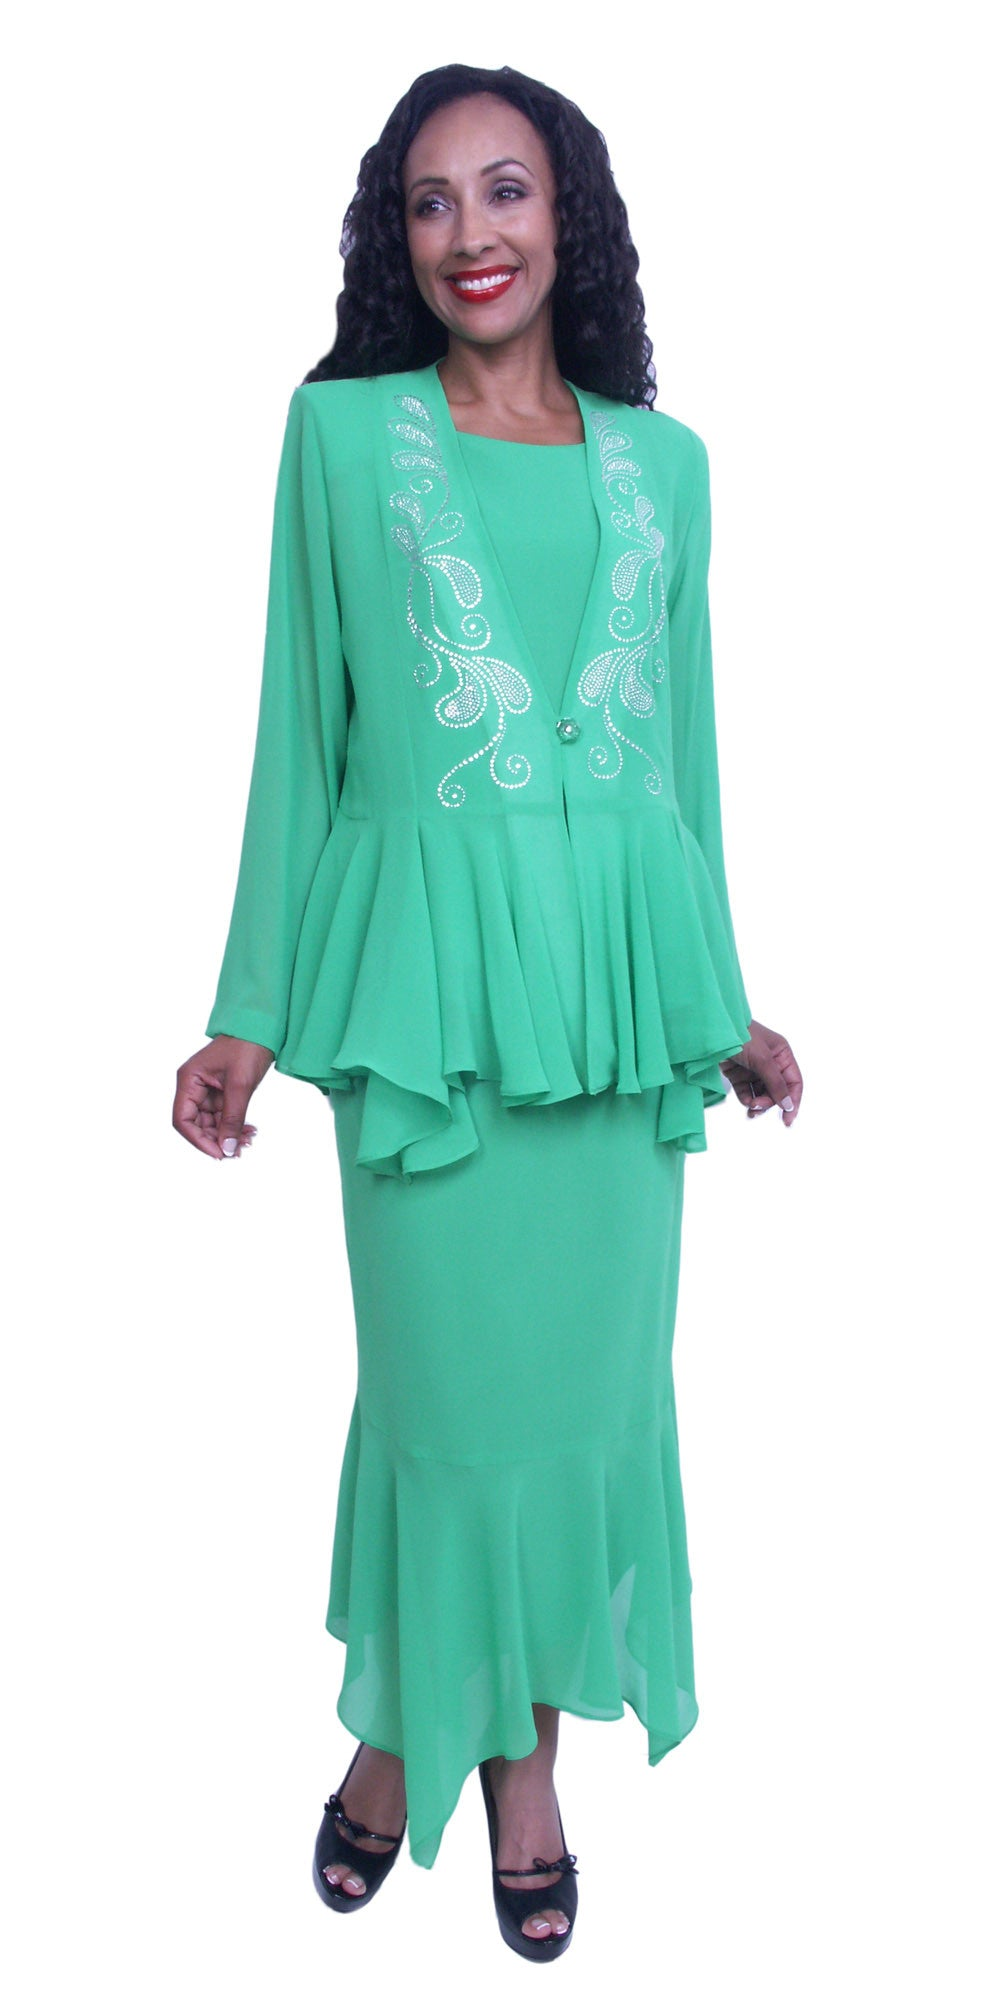 Tea-Length Kelly Green Peplum Embellished Jacket Plus Size Dress